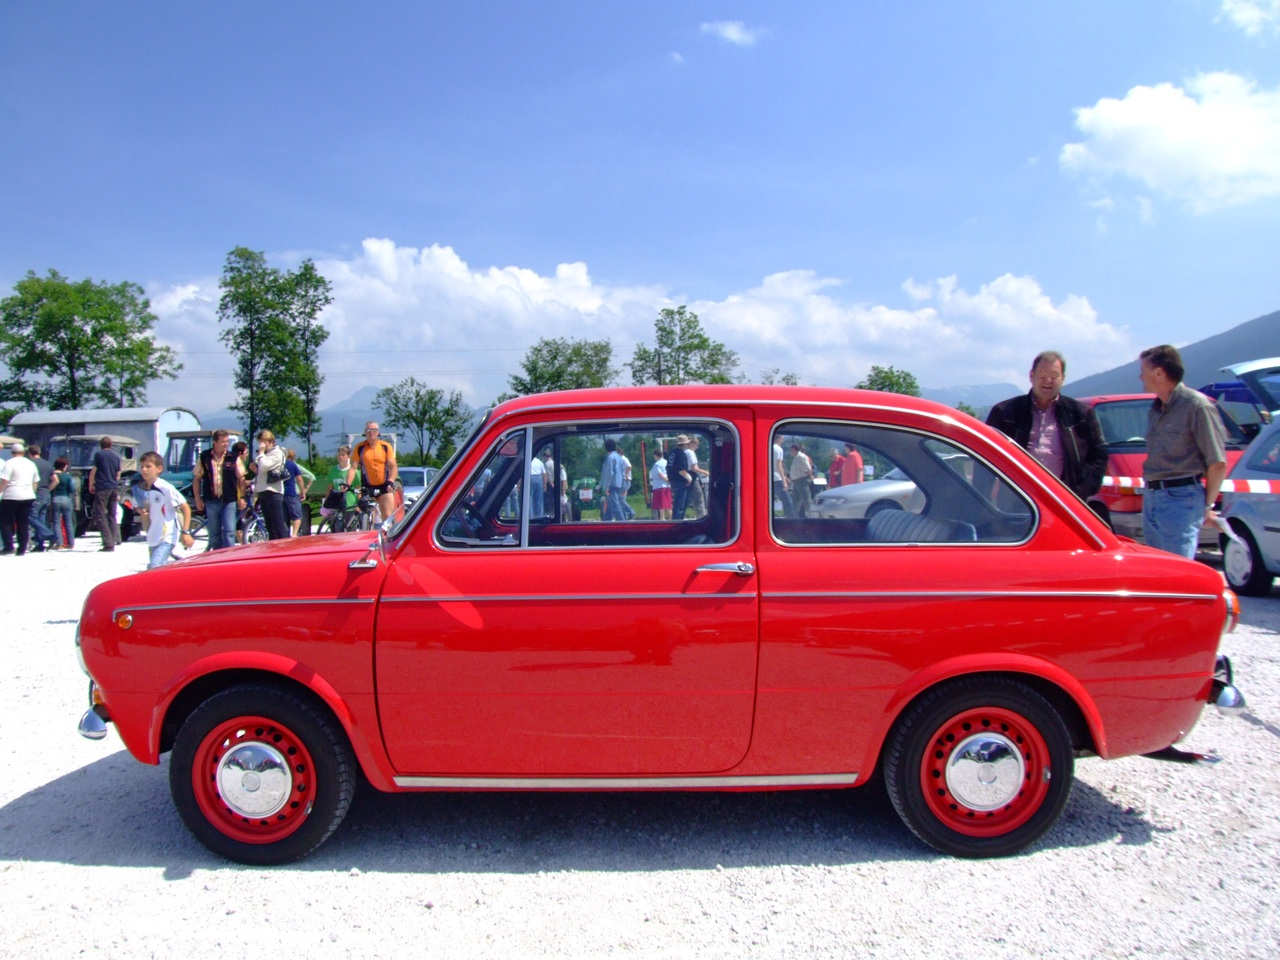 1000  images about Cars on Pinterest | Fiat abarth, Bmw isetta and ...